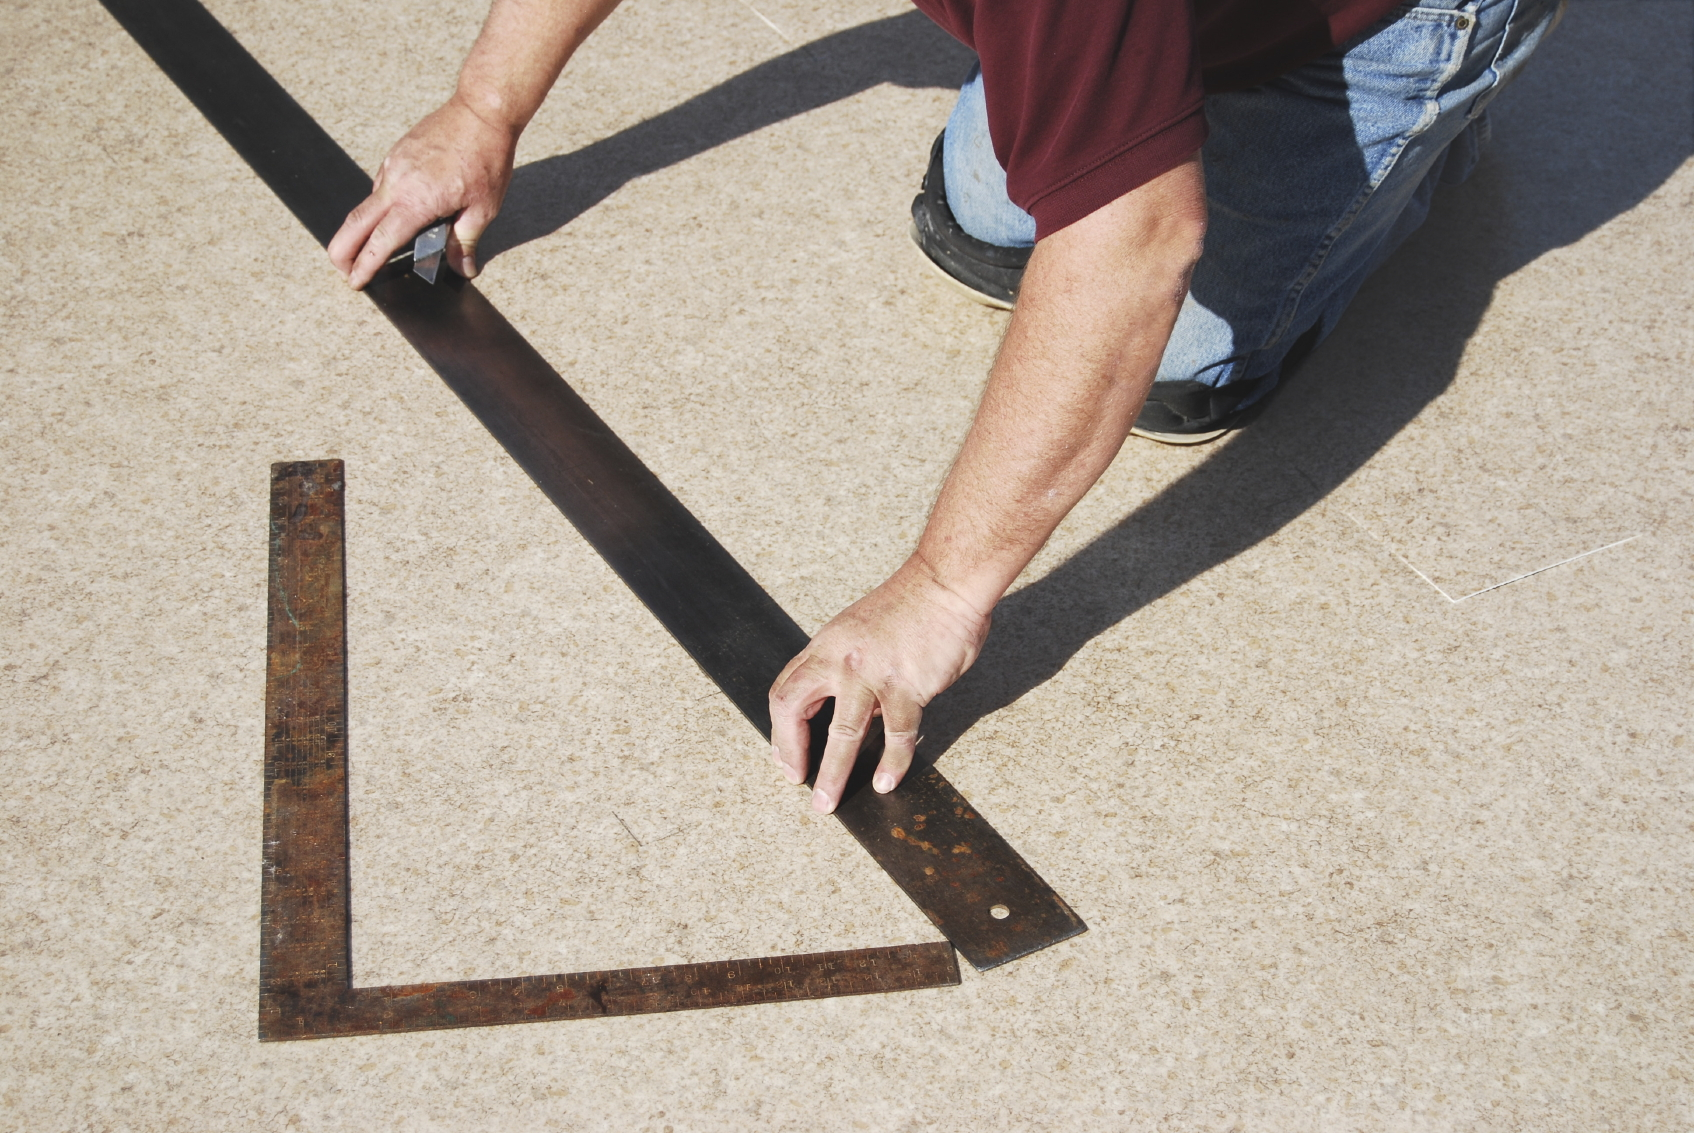 Measuring carpet for insert installation